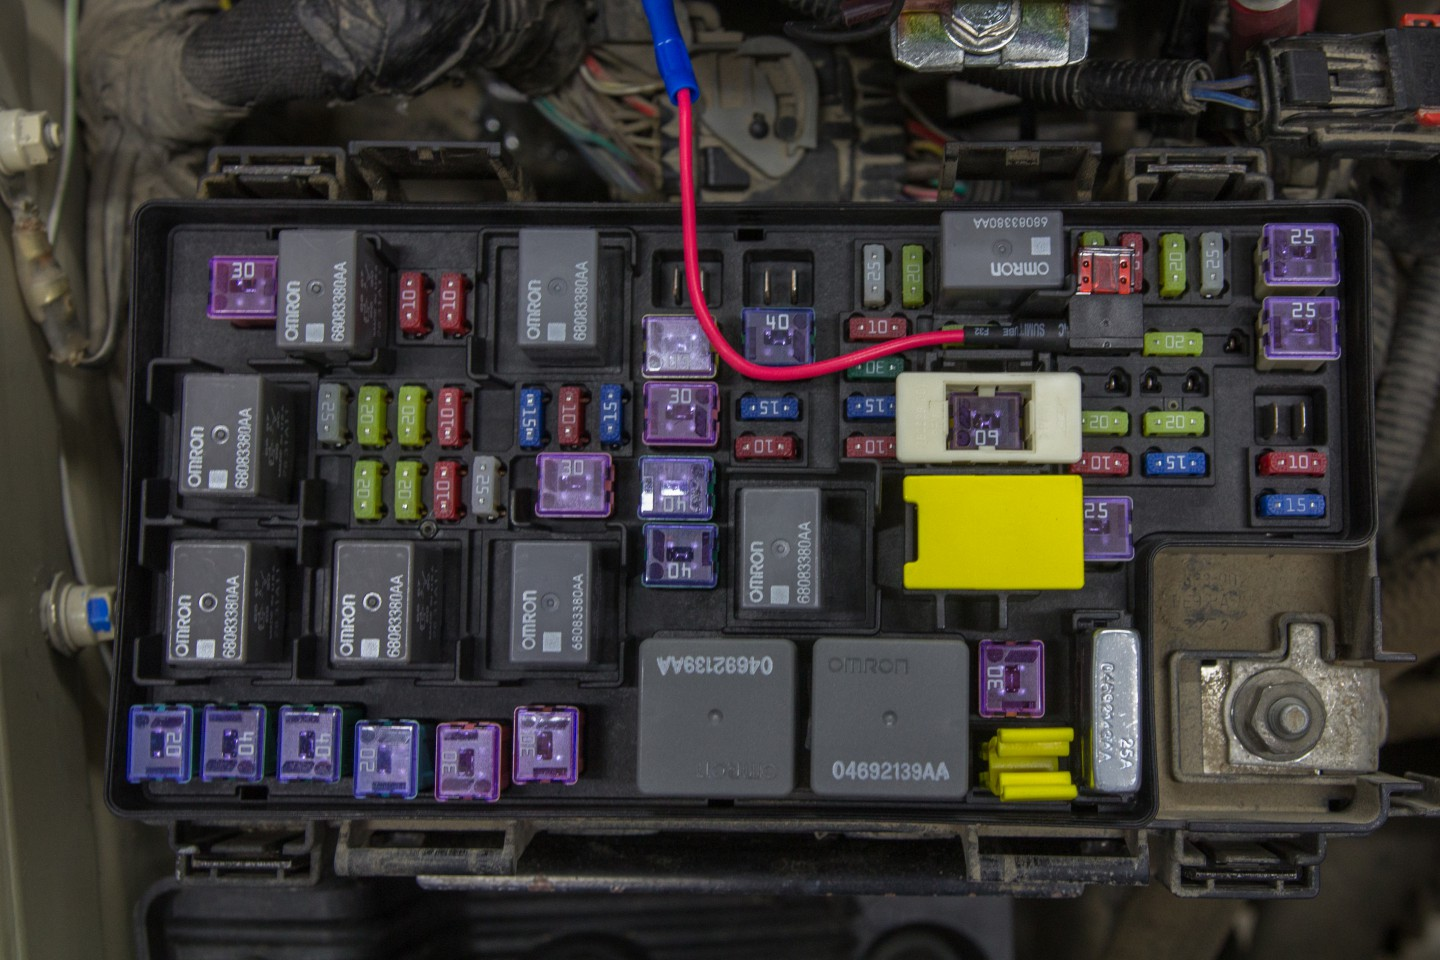 jk wrangler dual batteries trigger wire in fuse block 1440x960 2016 jeep jk fuse box diagram 1999 jeep wrangler fuse box diagram 2012 jeep wrangler fuse box diagram at readyjetset.co